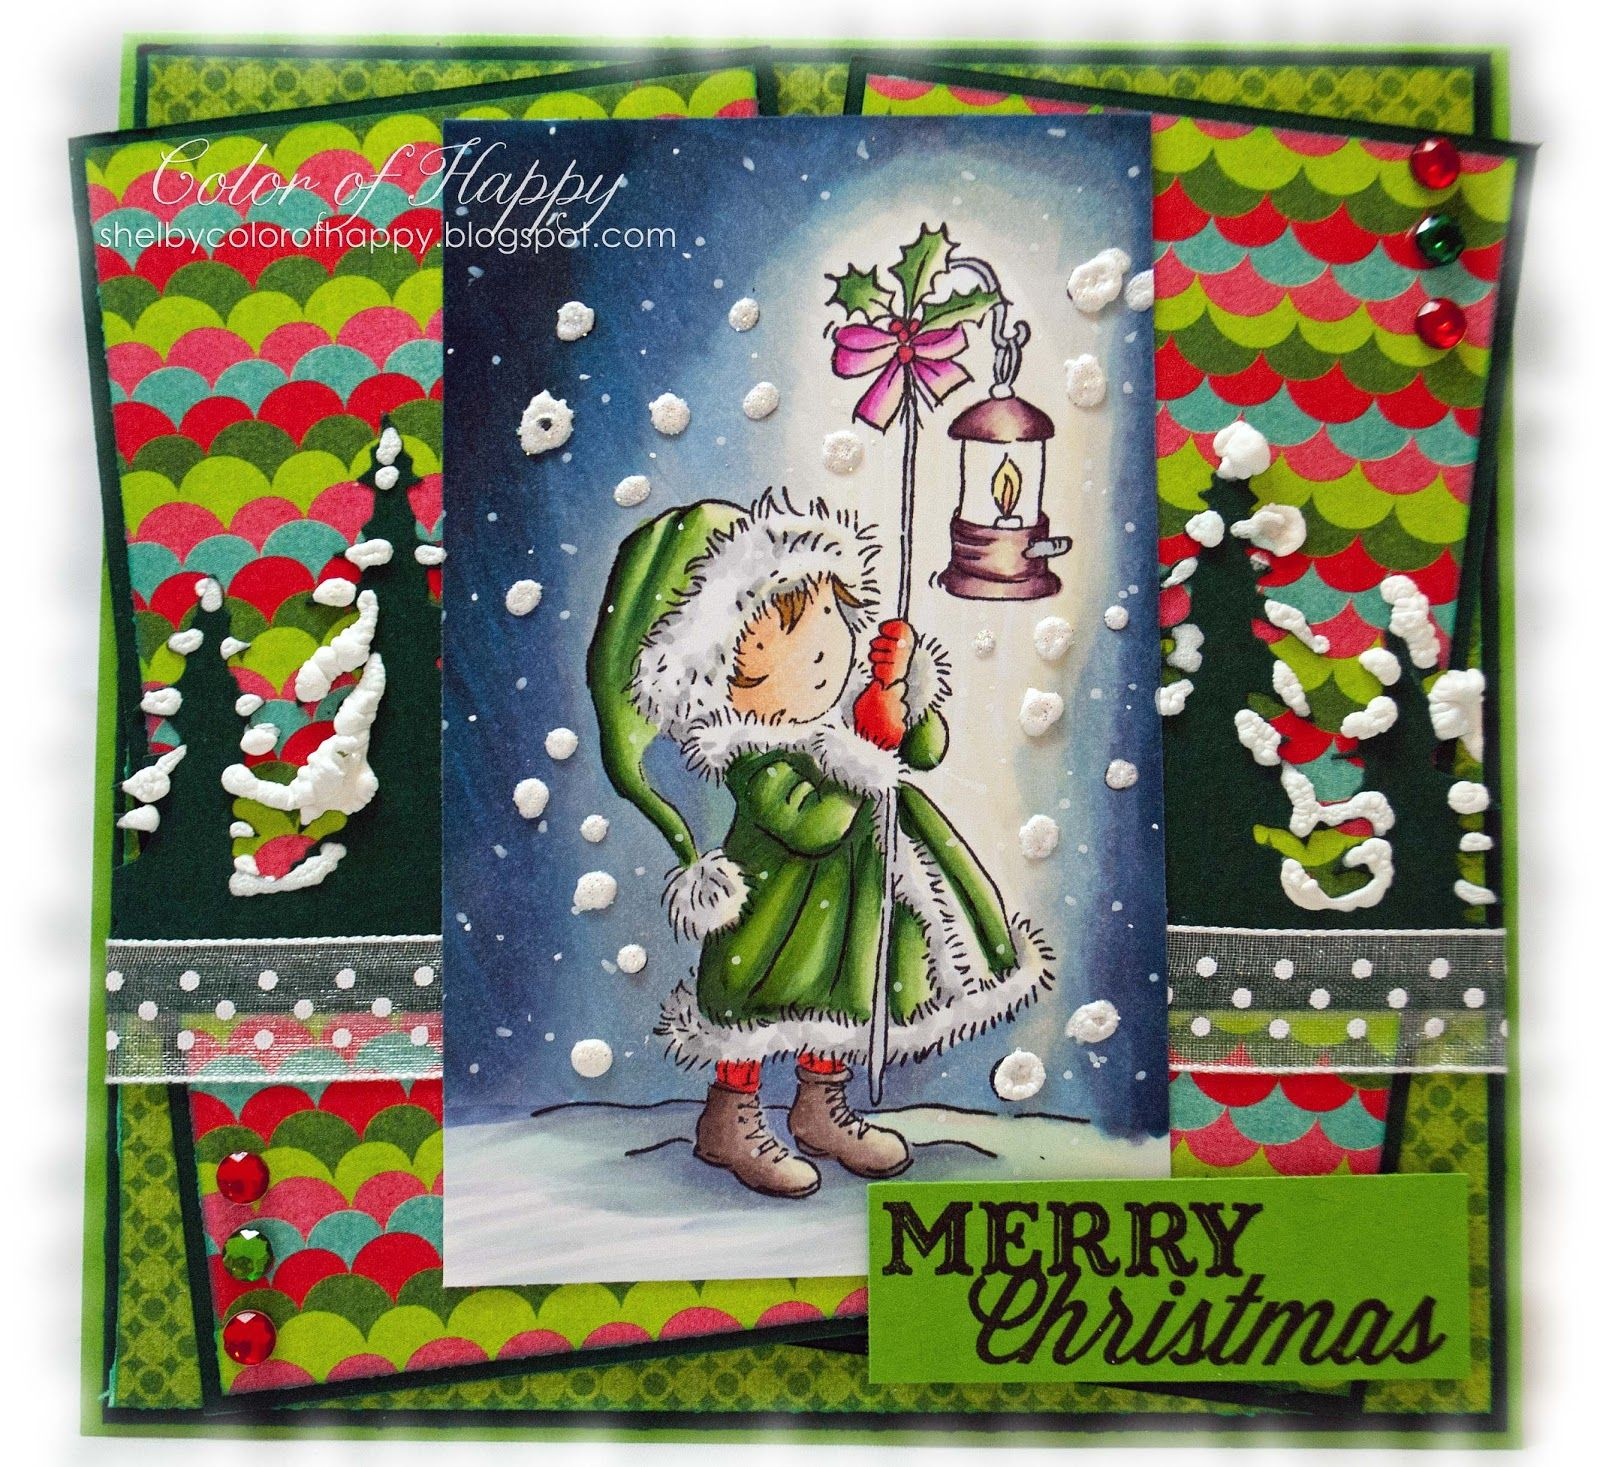 Color of happy sweet christmas christmas cards pinterest color of happy sweet christmas kristyandbryce Gallery